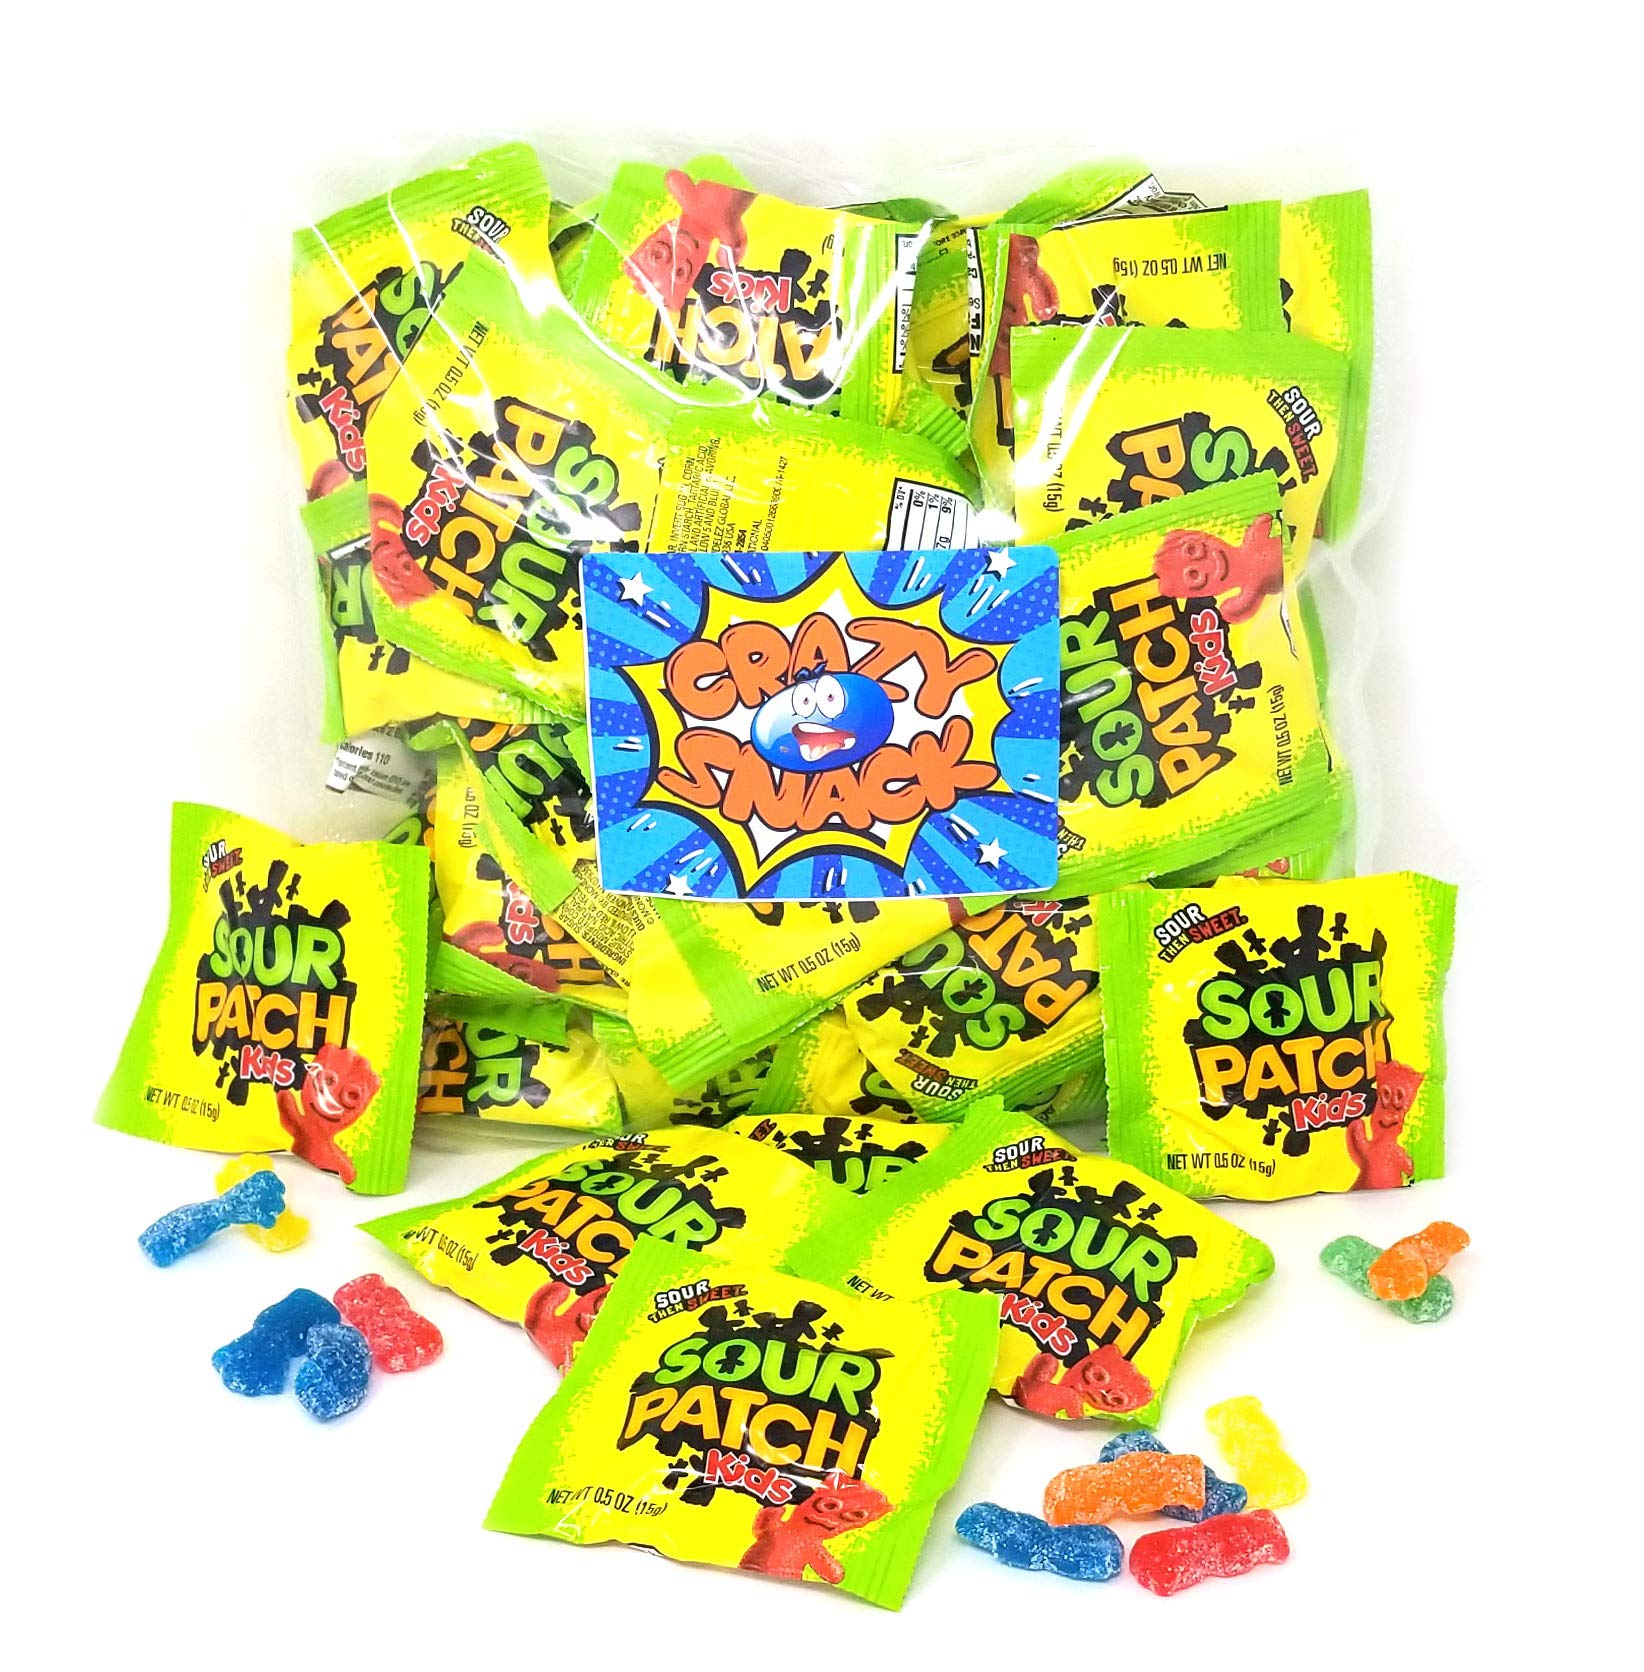 Amazon.com : SWEDISH FISH Soft and Chewy Candy